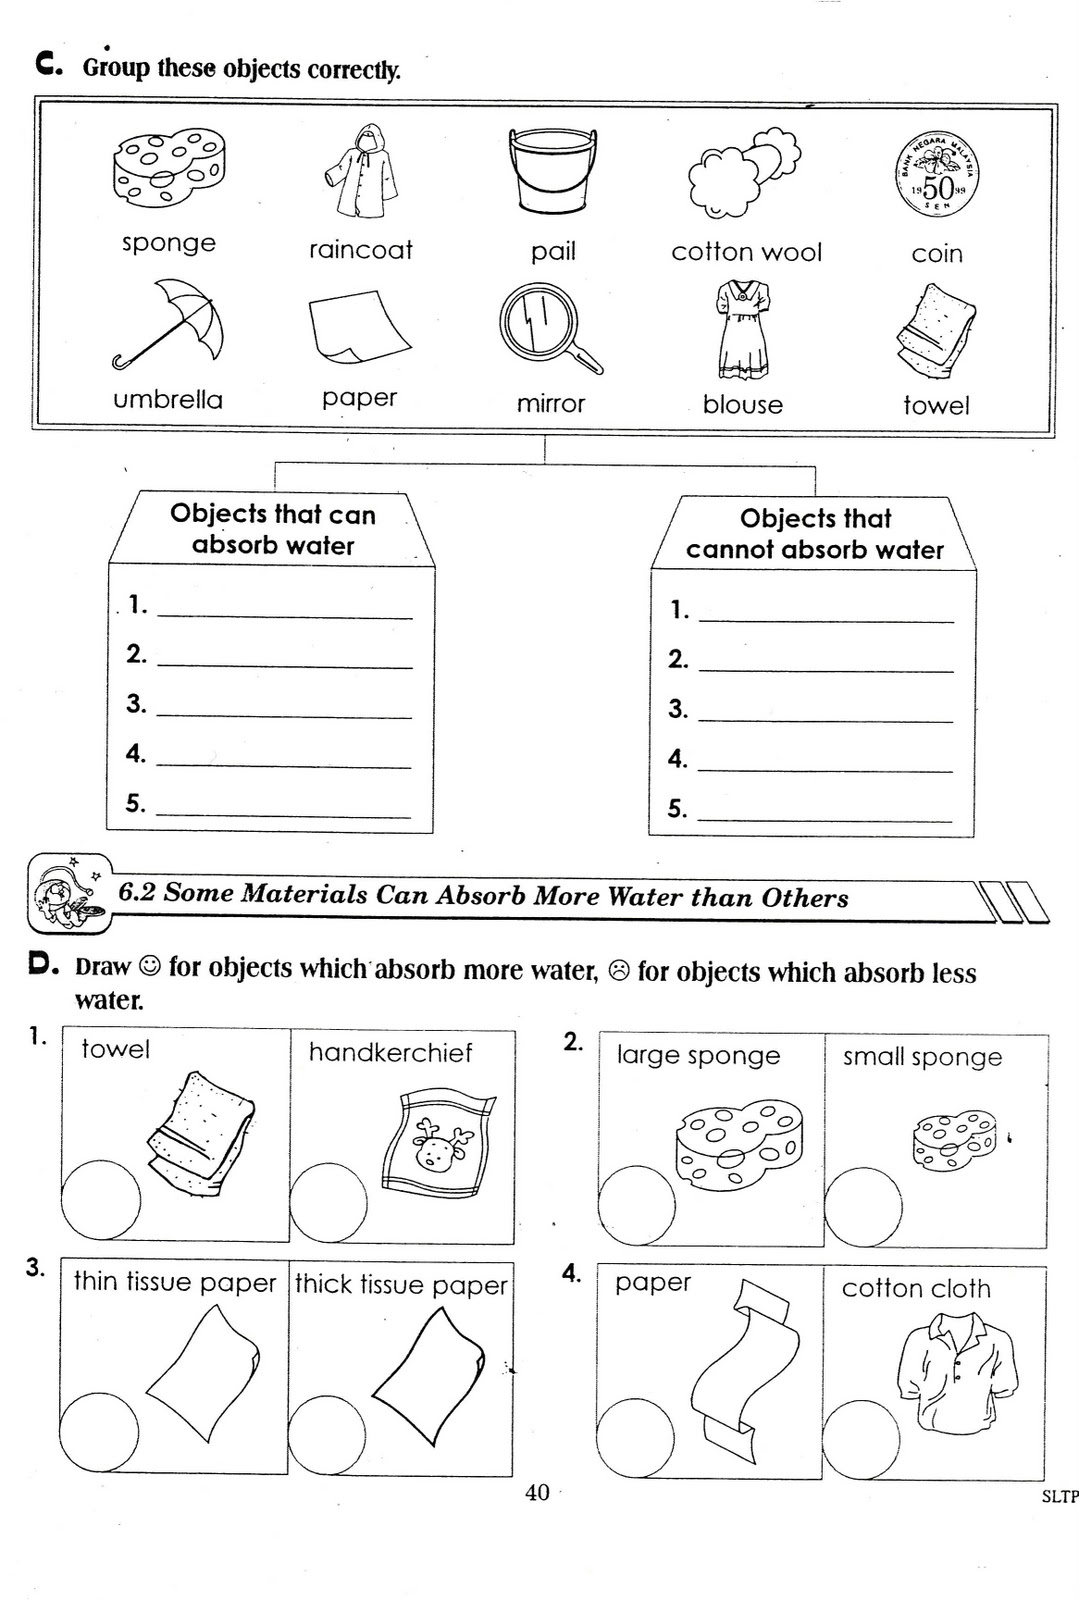 New Science Variables Worksheet 5th Grade Rpplusplus